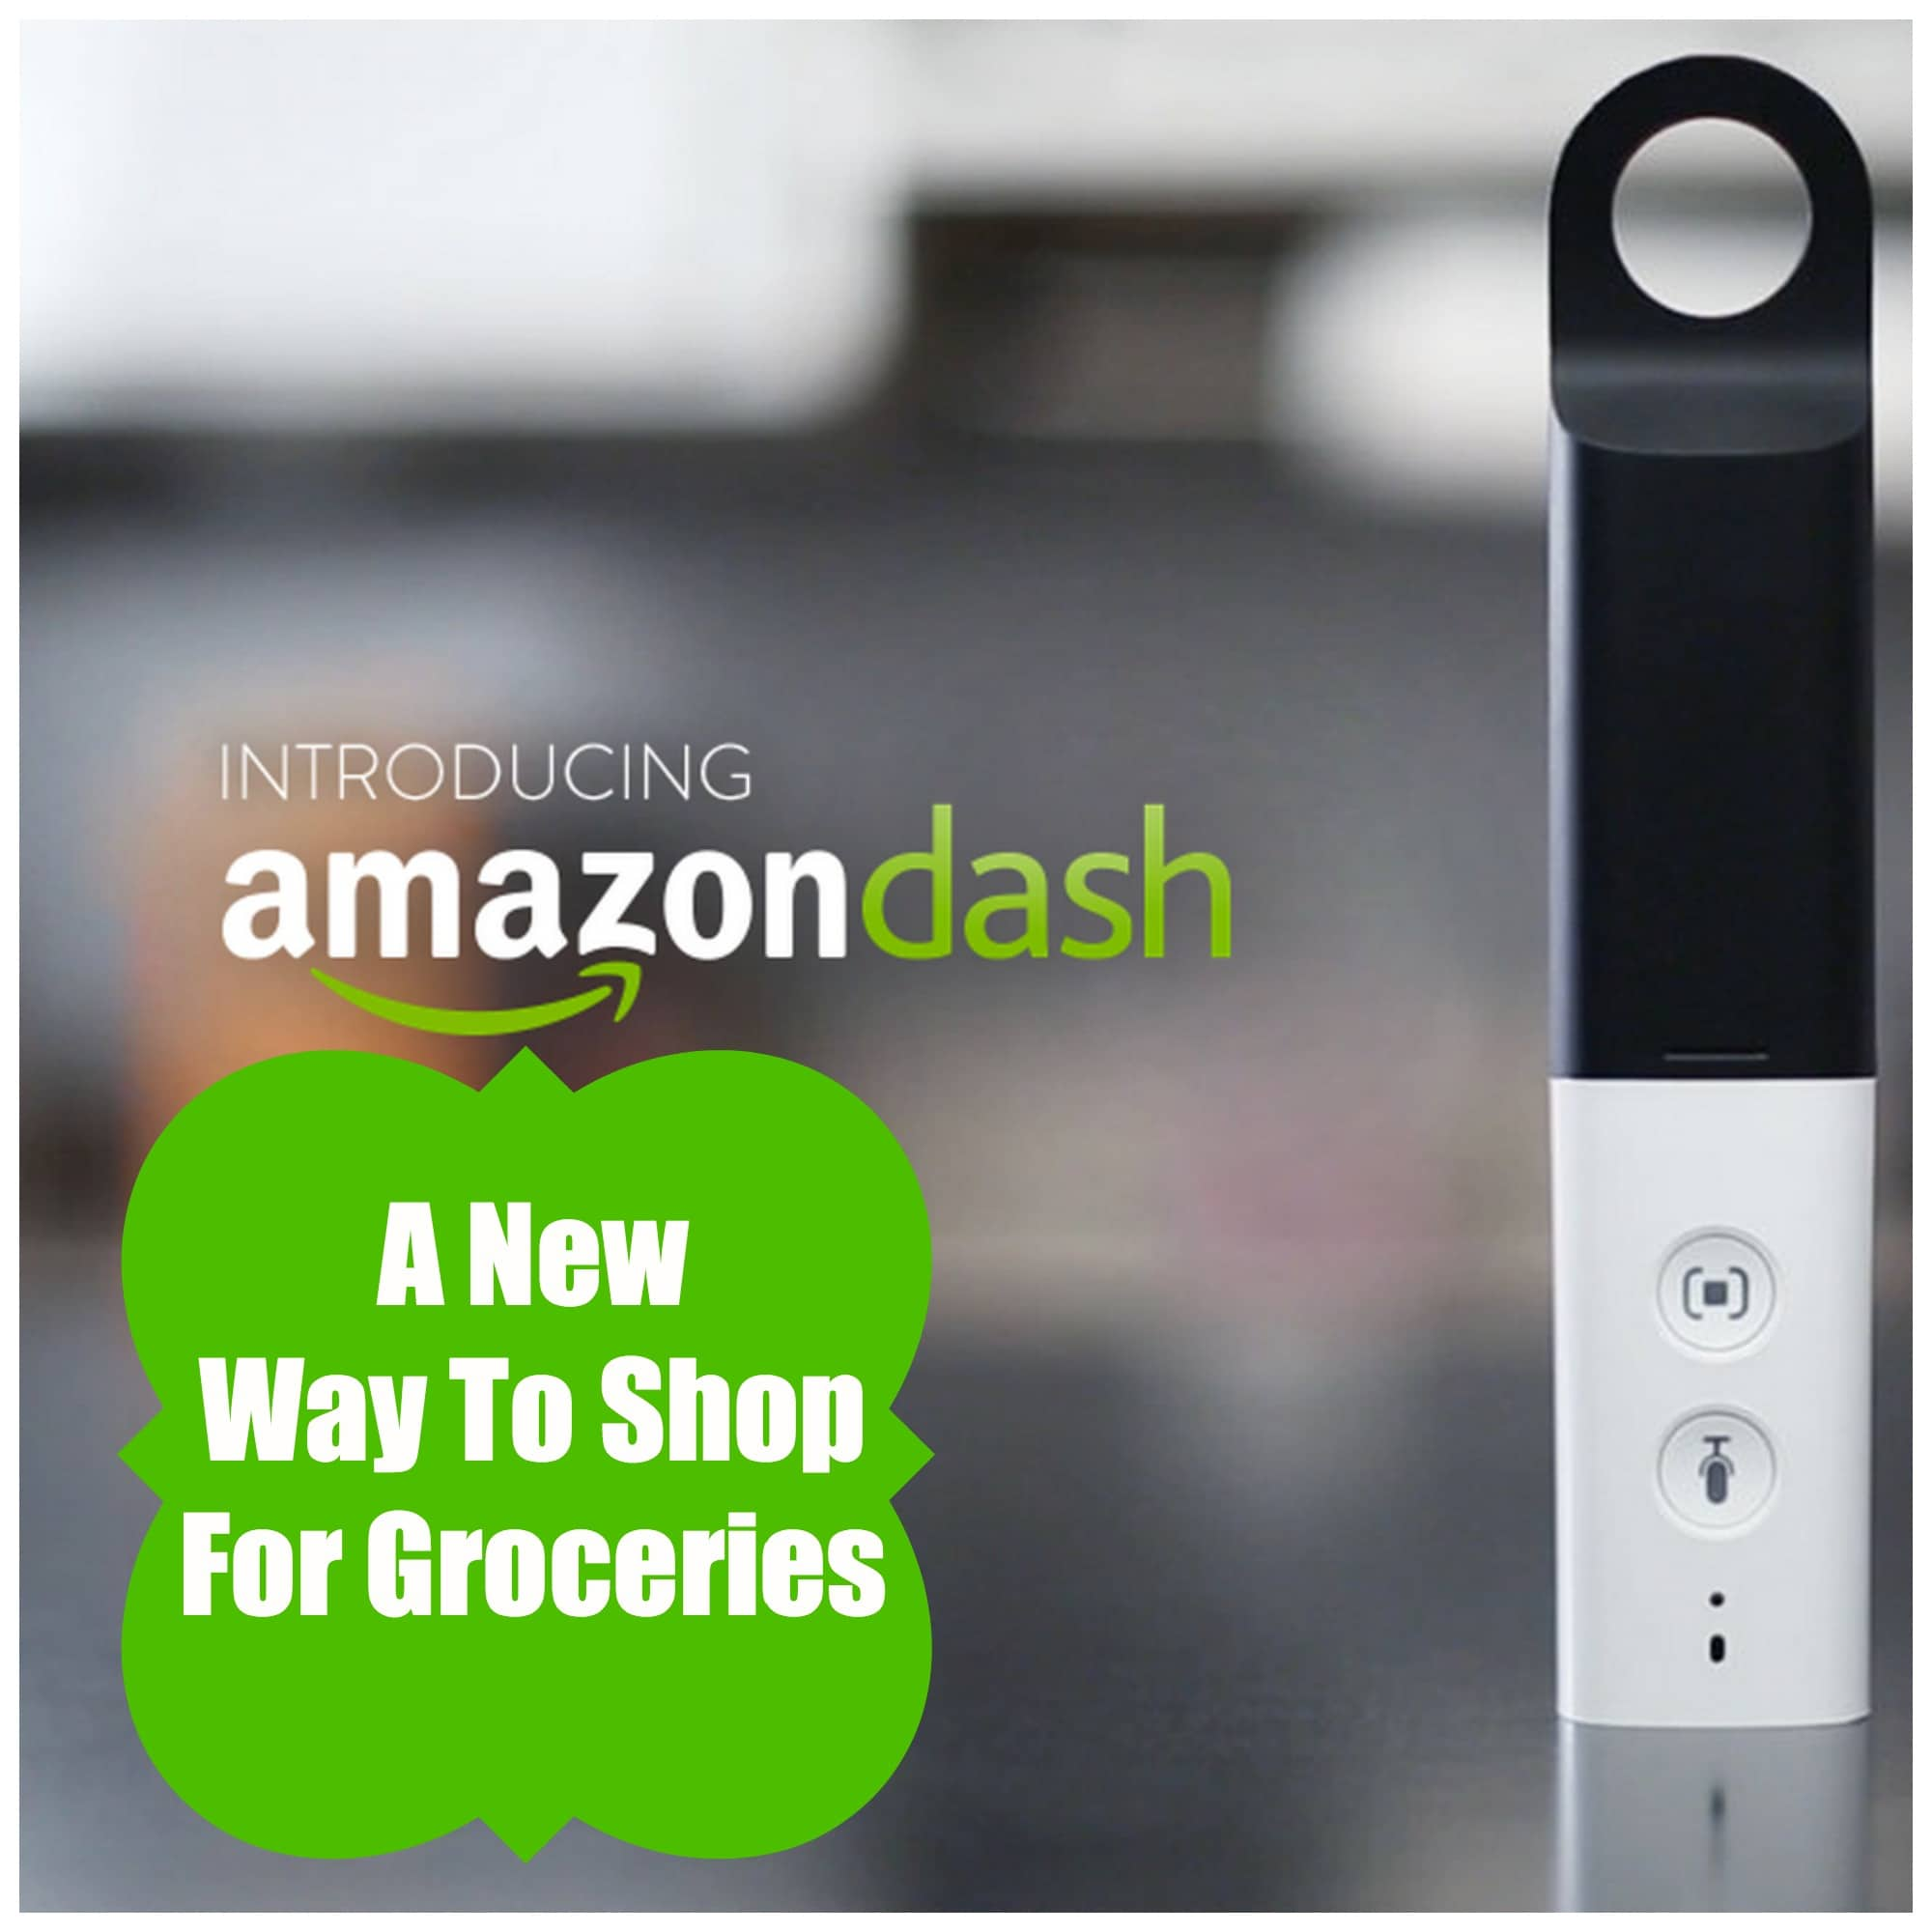 groceries_amazon_dash.jpg